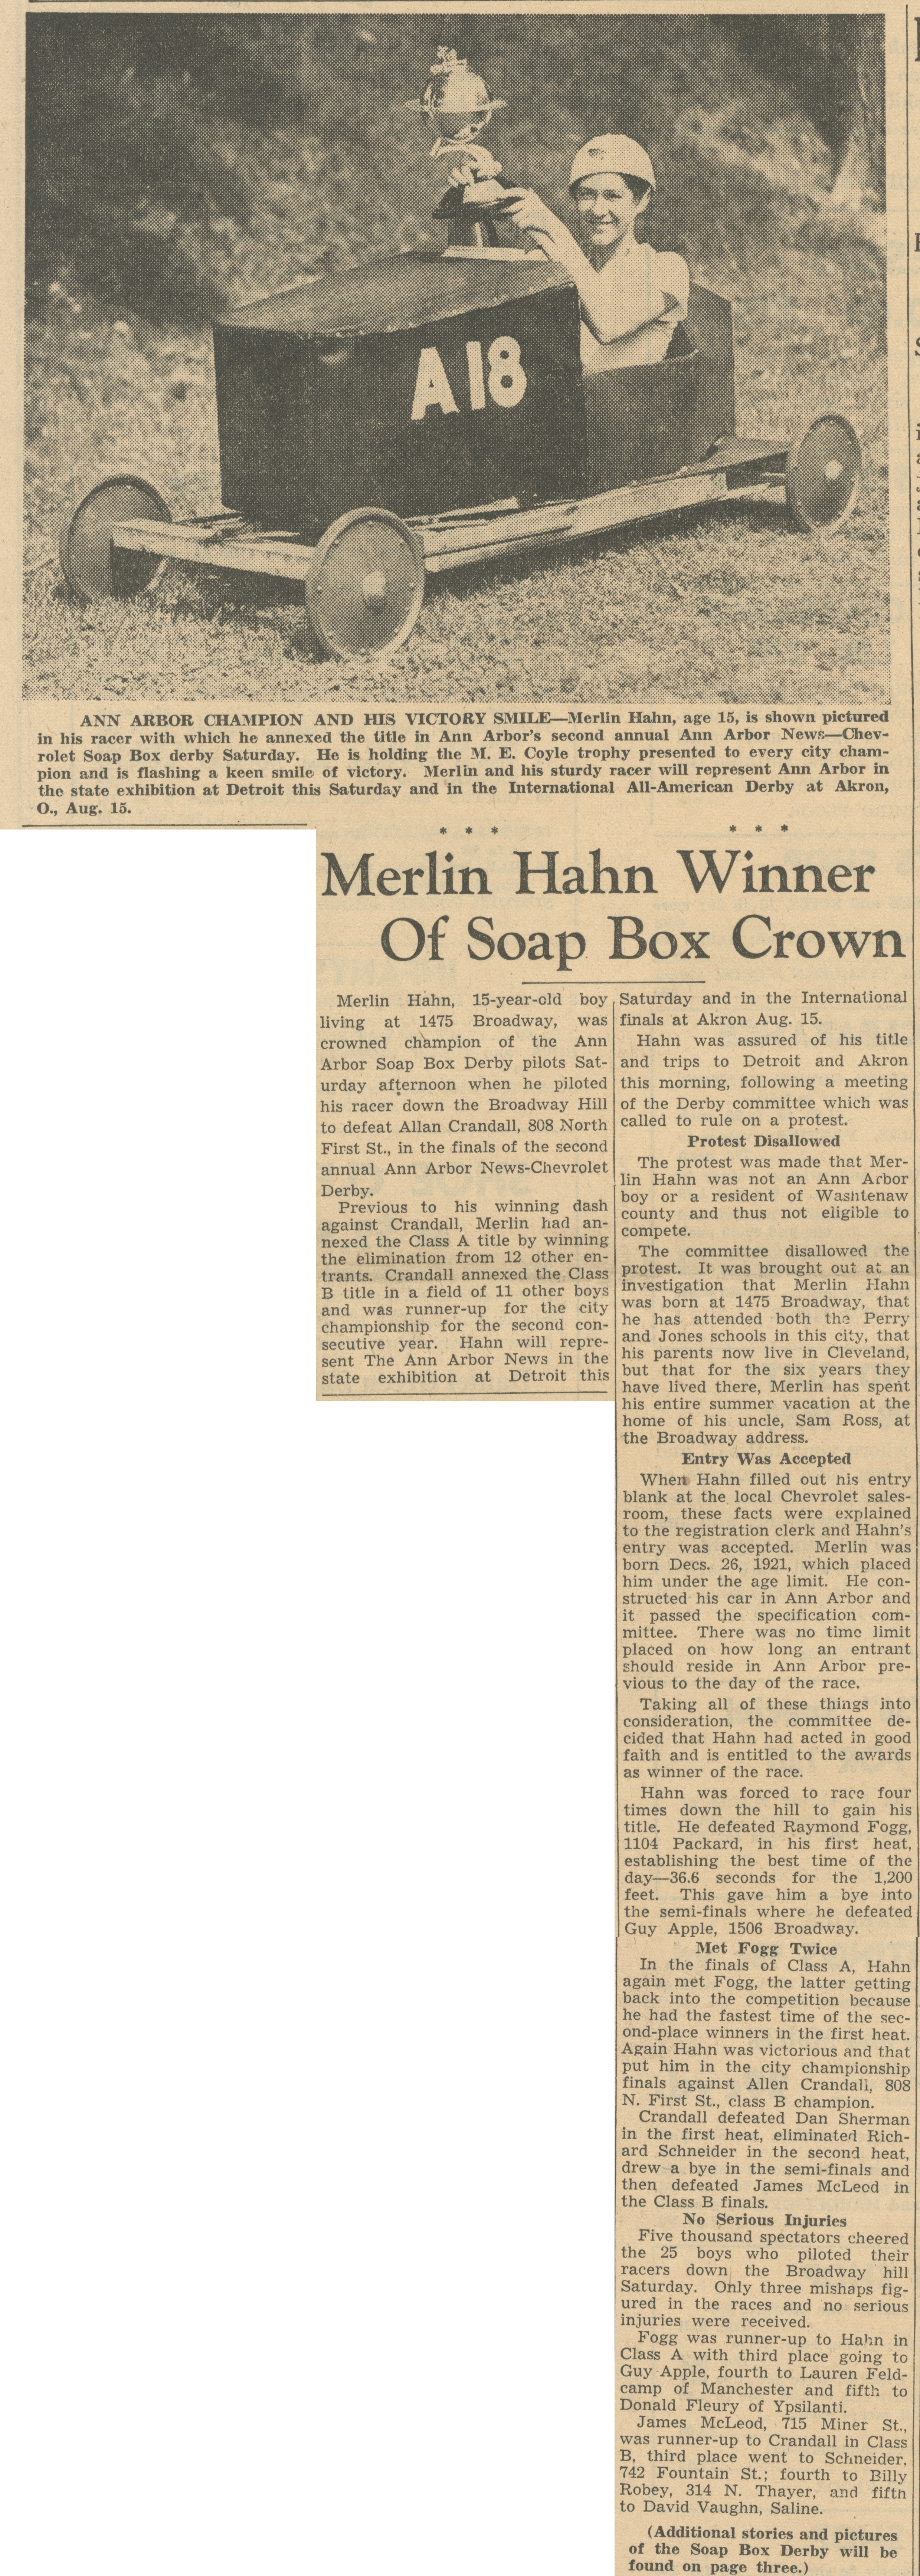 Merlin Hahn Winner Of Soap Box Crown image